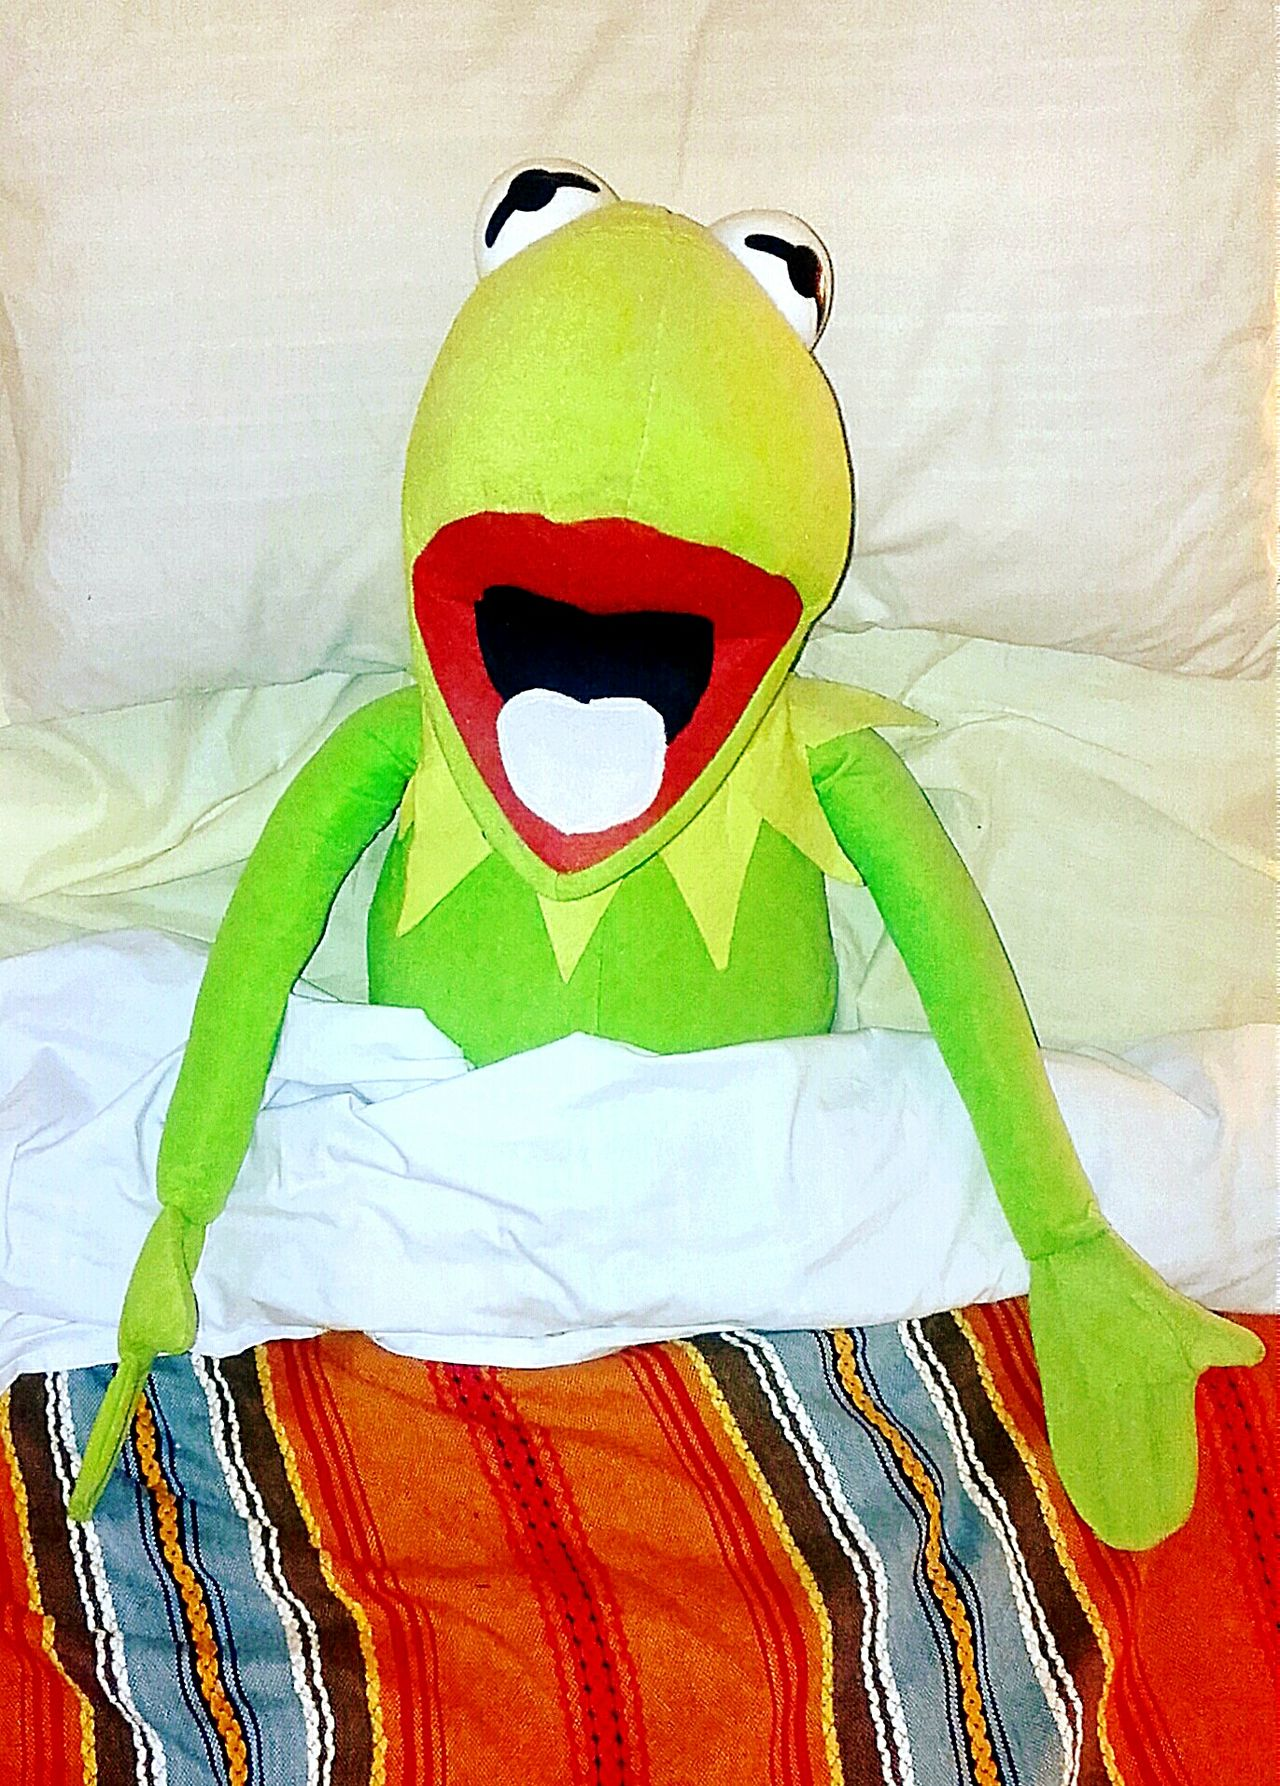 Kermit Animal Representation Kermie Let Me Sleep In Bed Just Chillin' Hang Over  Going To Bed Hung Over Good Morning Waking Up Bedtime InBed Feeling Green Who's Been Sleeping In My Bed? Miss Piggy Loves Kermie Kermit Kermit Rules!👊 Kermitthefrog Kermit The Frog I'm Feeling A Bit Green Check This Out Laying In Bed Lying In Bed I Want Breakfast In Bed Who Woke Me? Bed Time Funnypictures Funny Pics Funny Pictures No People